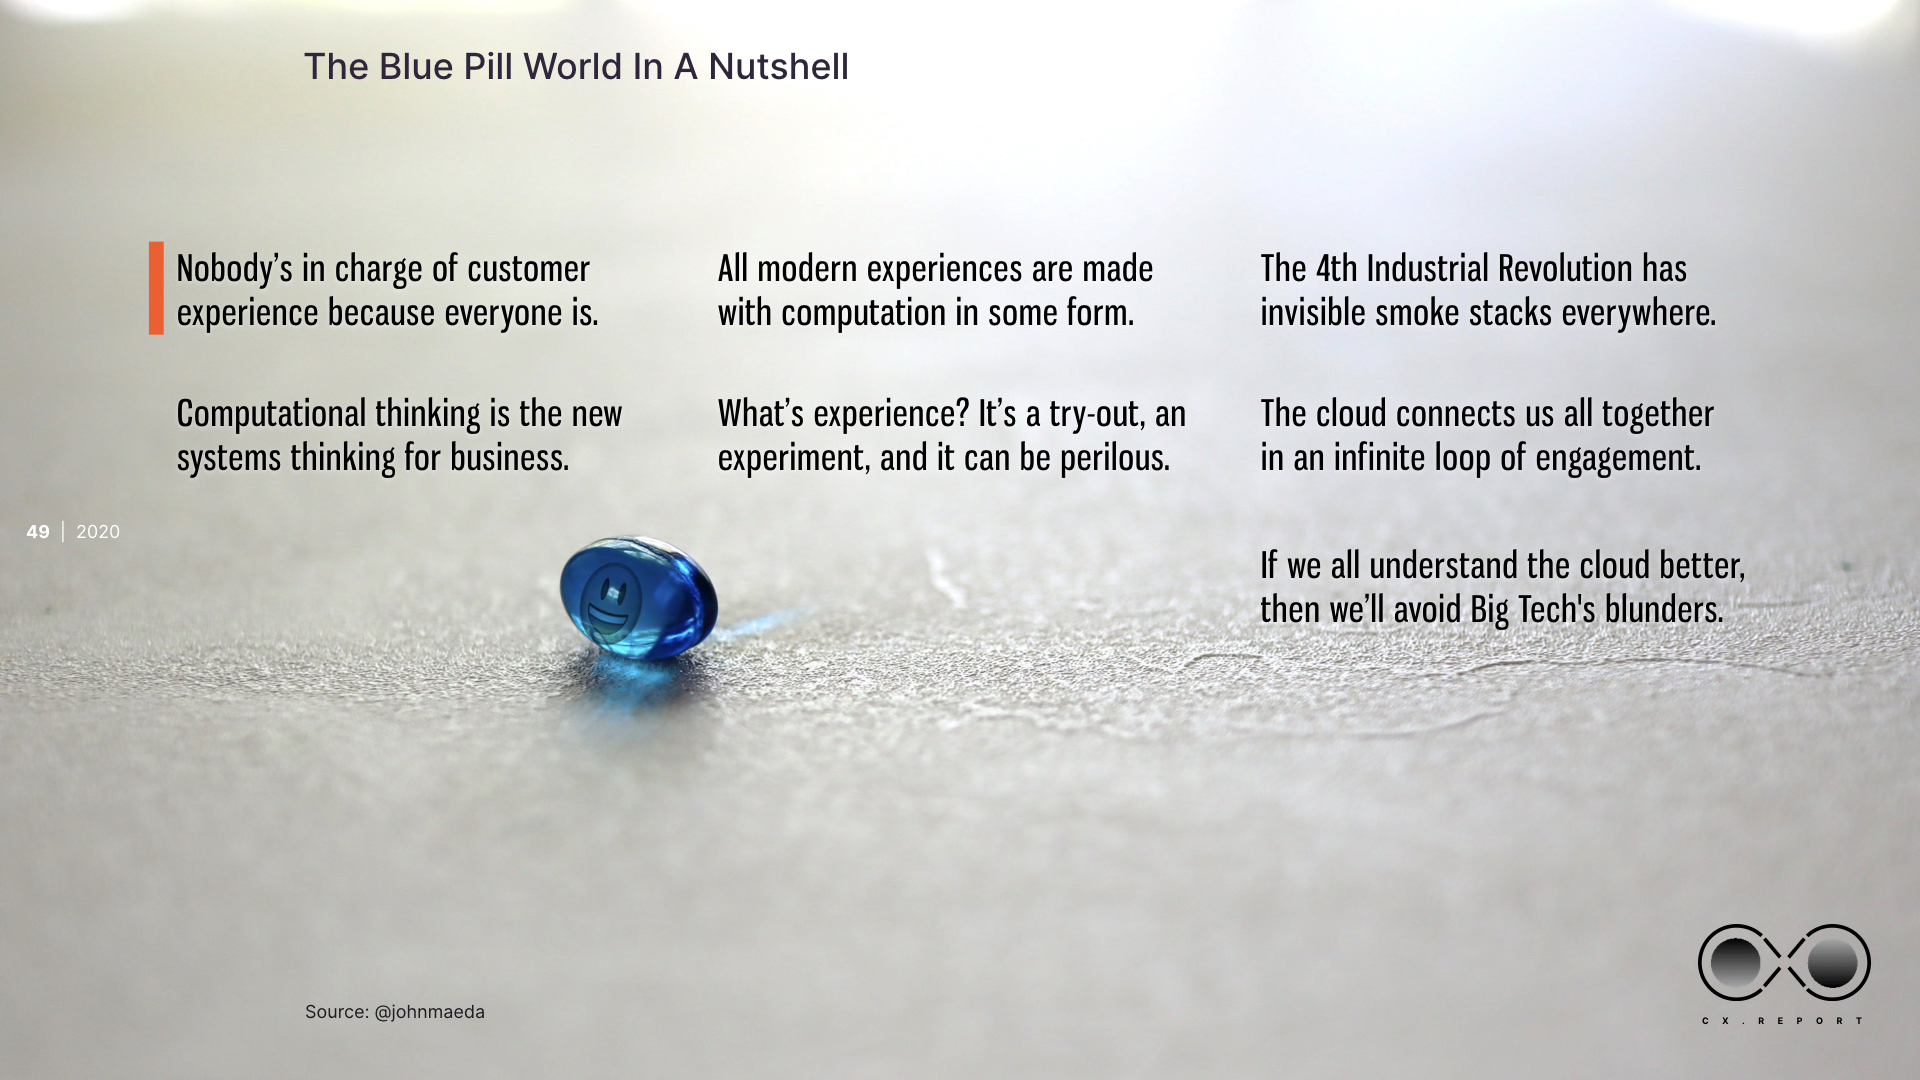 Blue pill summary as explanatory text below as readable text.